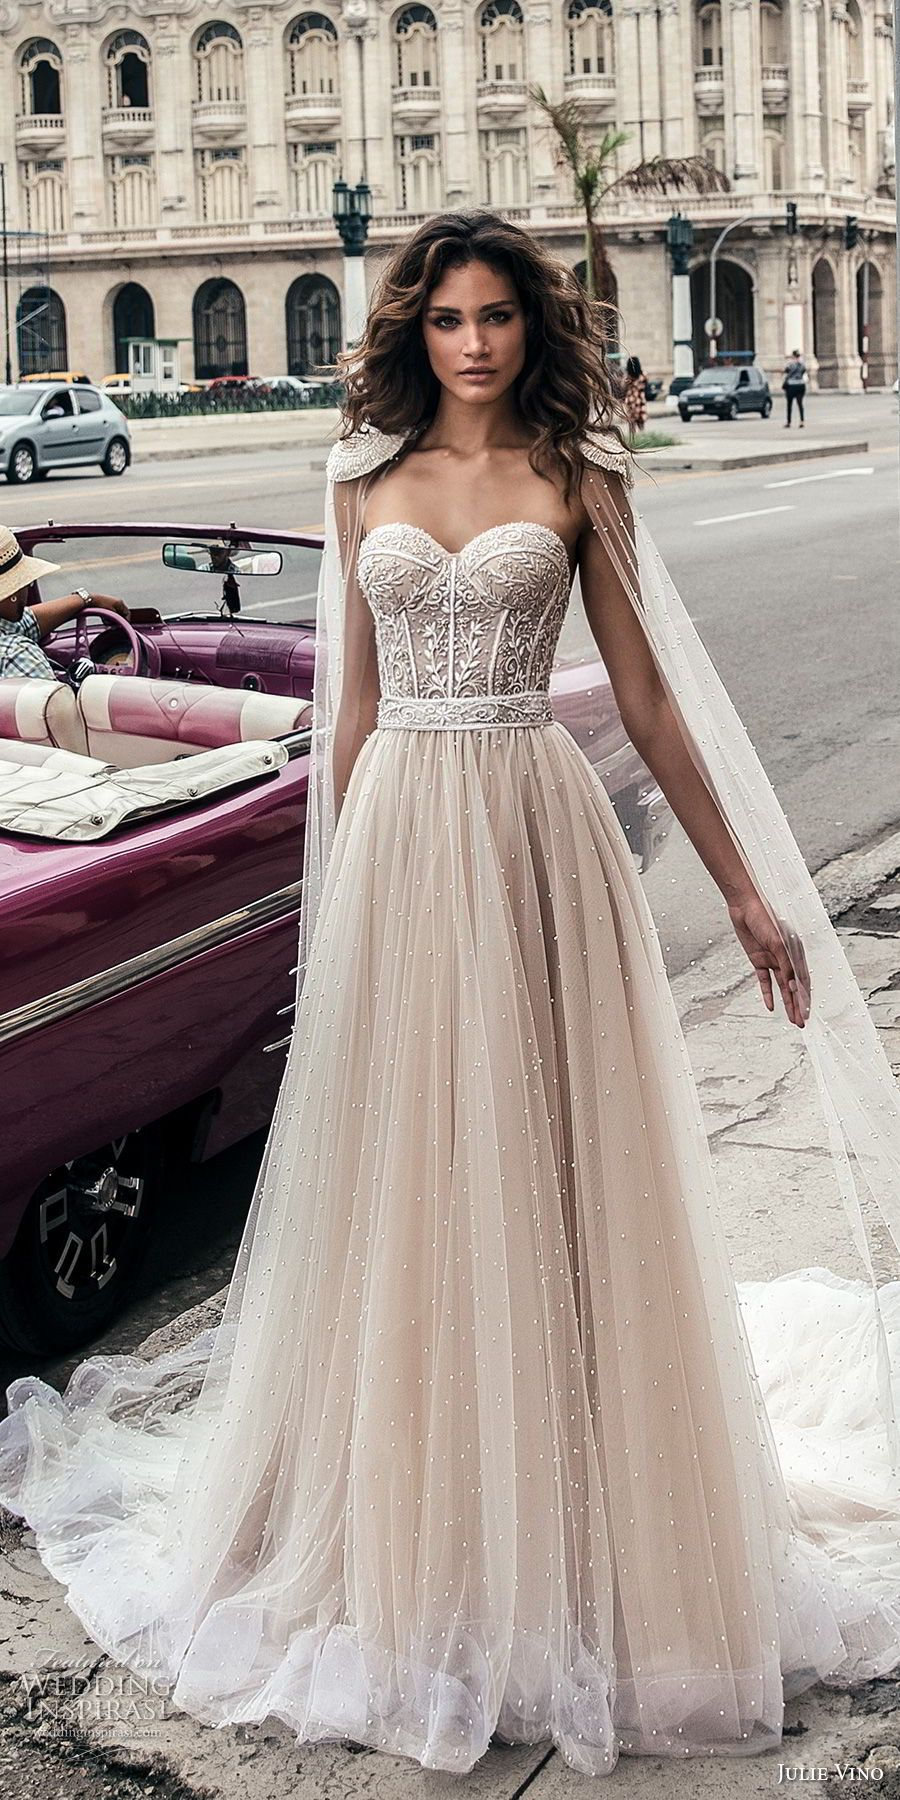 f48759f7c2c9 julie vino fall 2018 havana strapless sweetheart neckline heavily  embellished bodice tulle skirt romantic soft a line wedding dress open back  chapel train ...